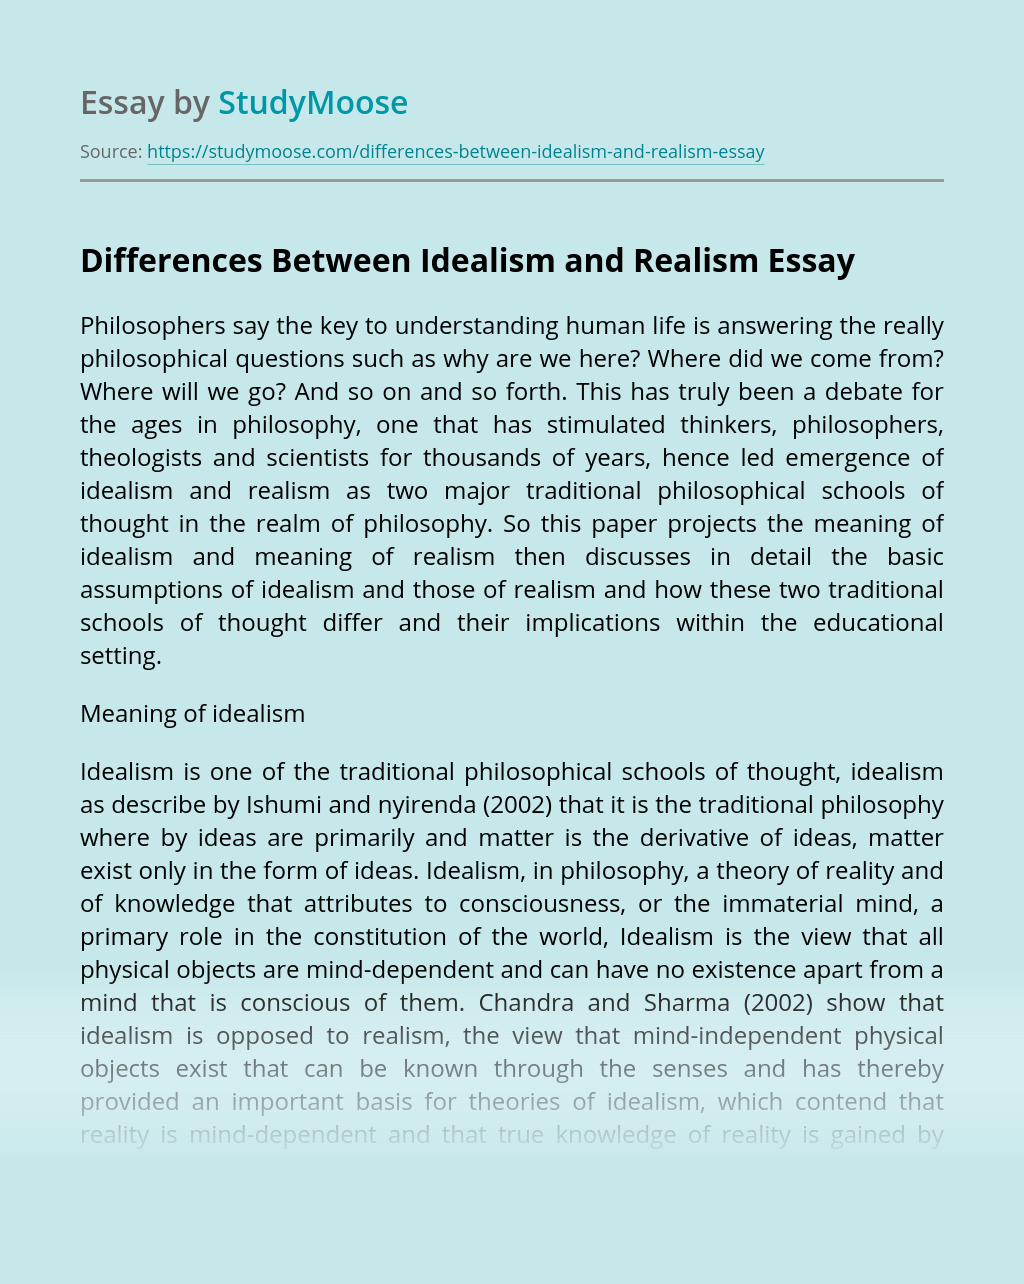 Differences Between Idealism and Realism